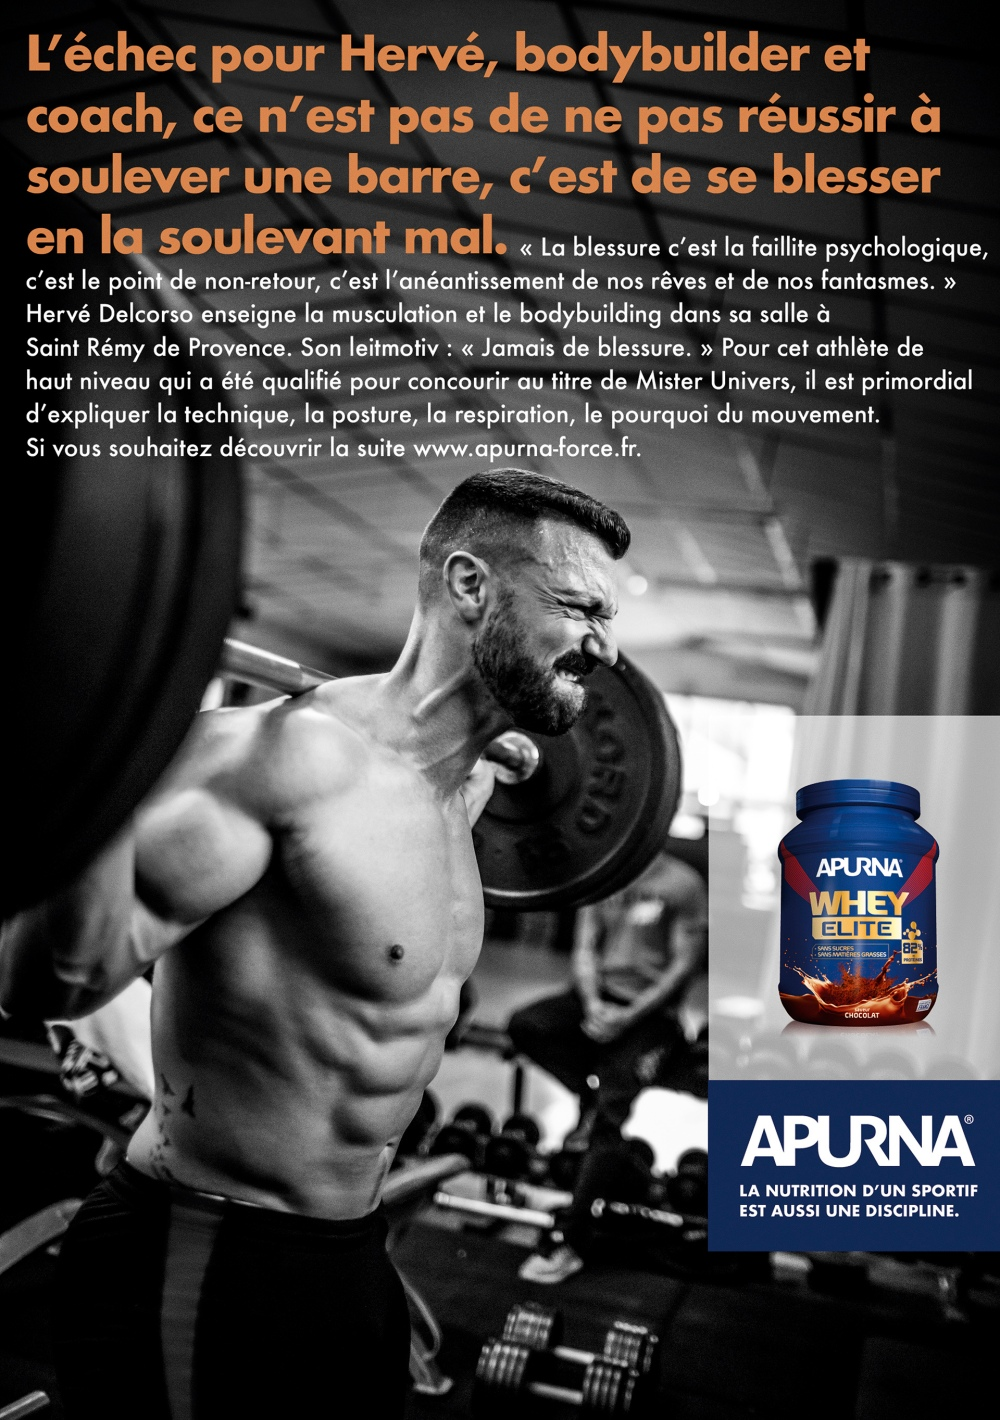 HERVE_ROMAIN STAROS shoots advertising campaign for APURNA